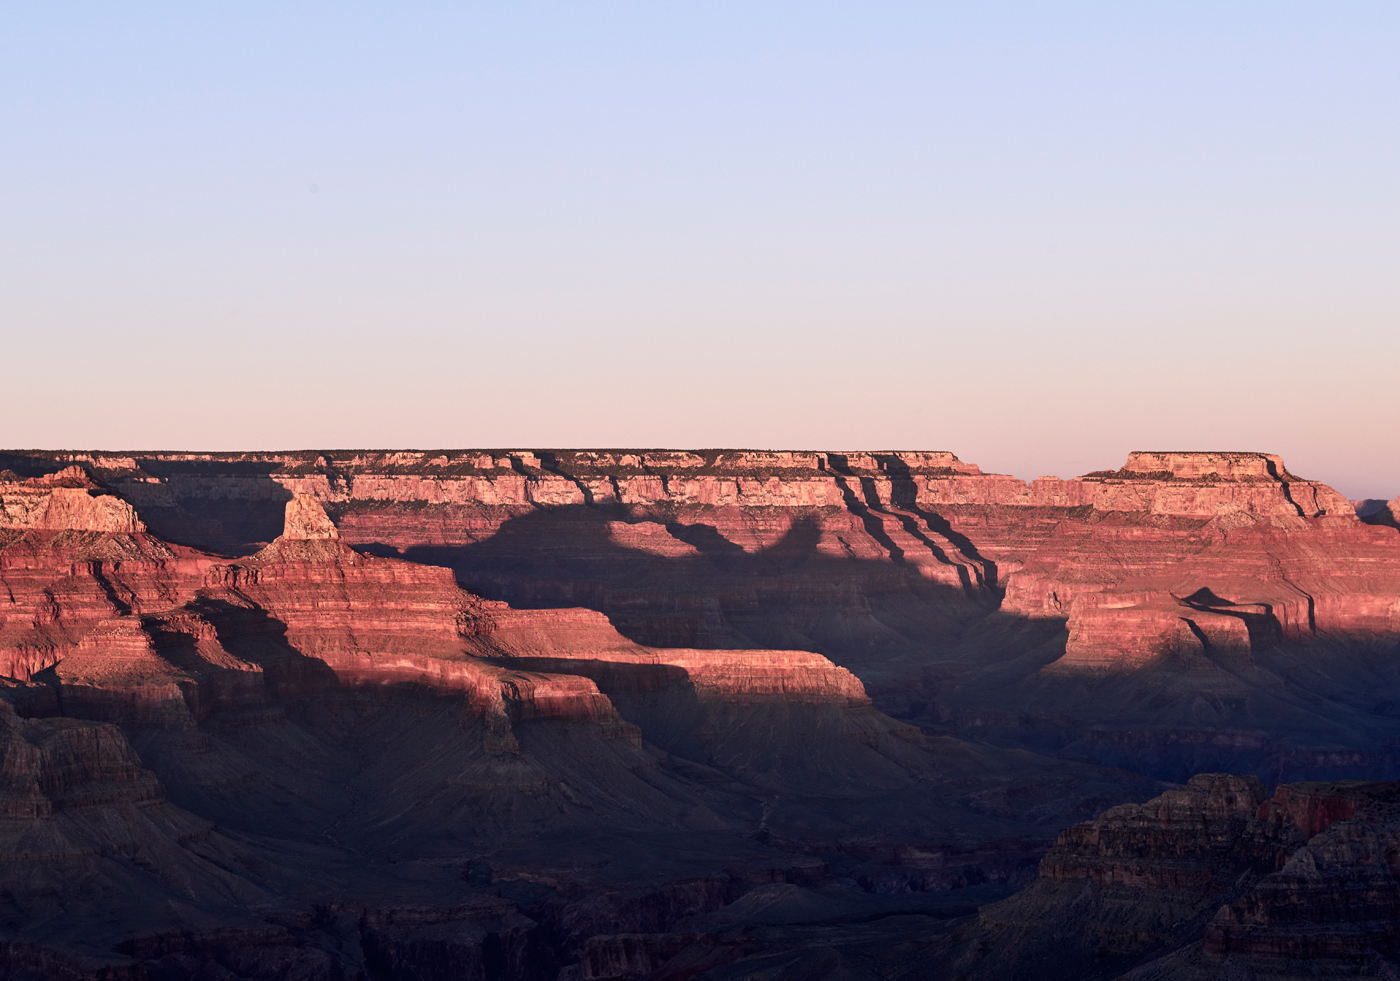 Sunset colours at Hopi Point on the south rim of the Grand Canyon. Kirsty Owen photography